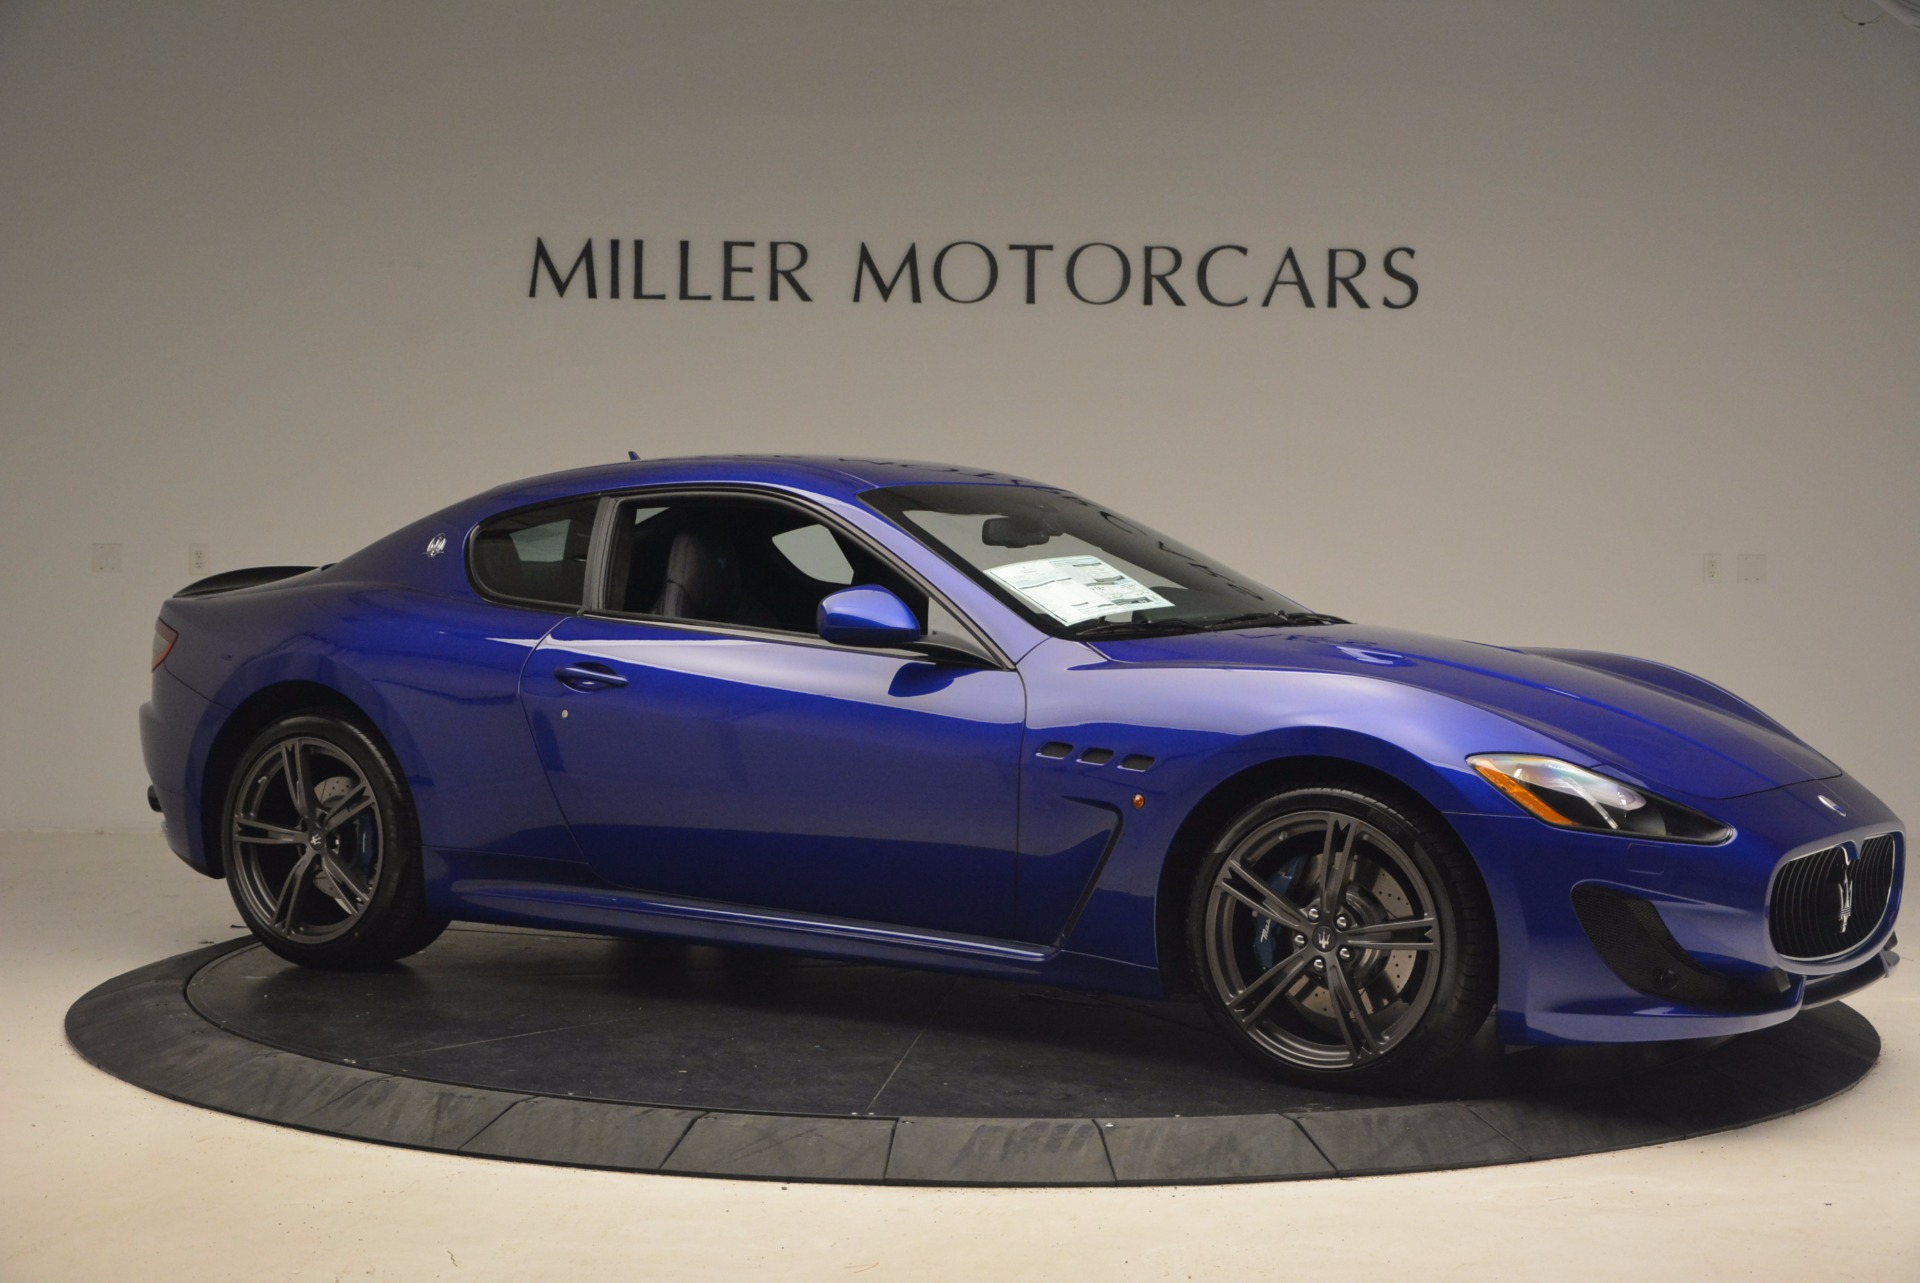 New 2017 Maserati GranTurismo Sport Coupe Special Edition For Sale In Westport, CT 1300_p10